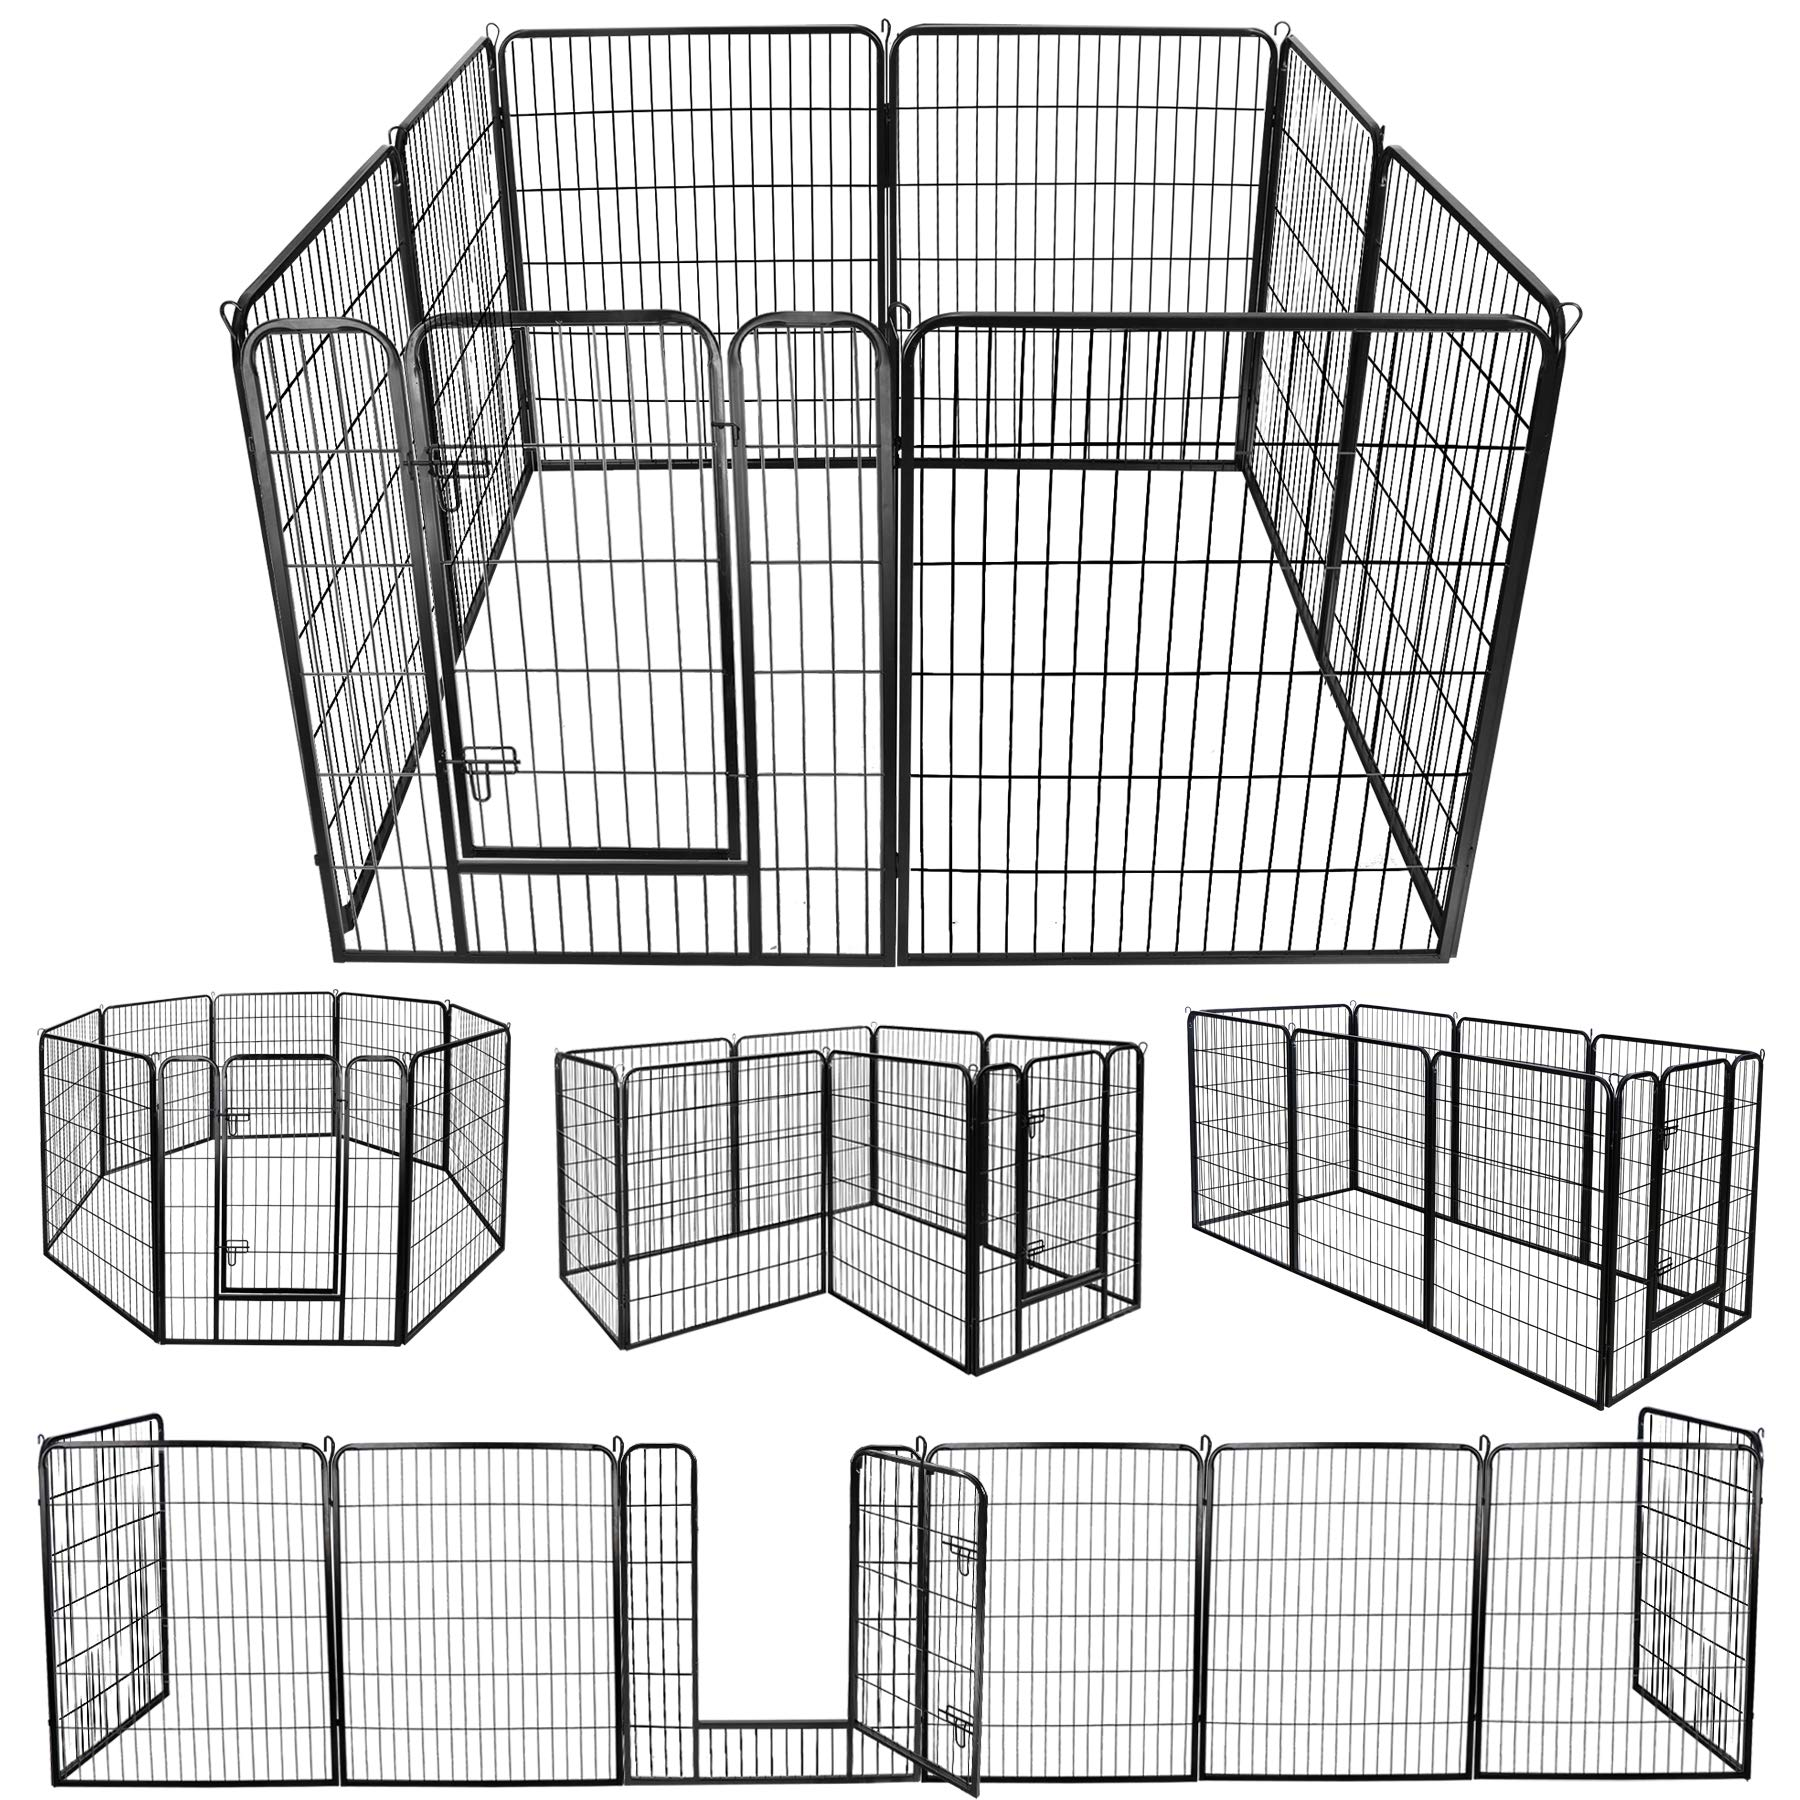 ZENY Foldable Metal Exercise Pen & Pet Playpen Puppy Cat Exercise Fence Barrier Playpen Kennel - 16 Panels/8 Panels (31.5'' W x 39.4'' H - 8 Panels) by ZENY